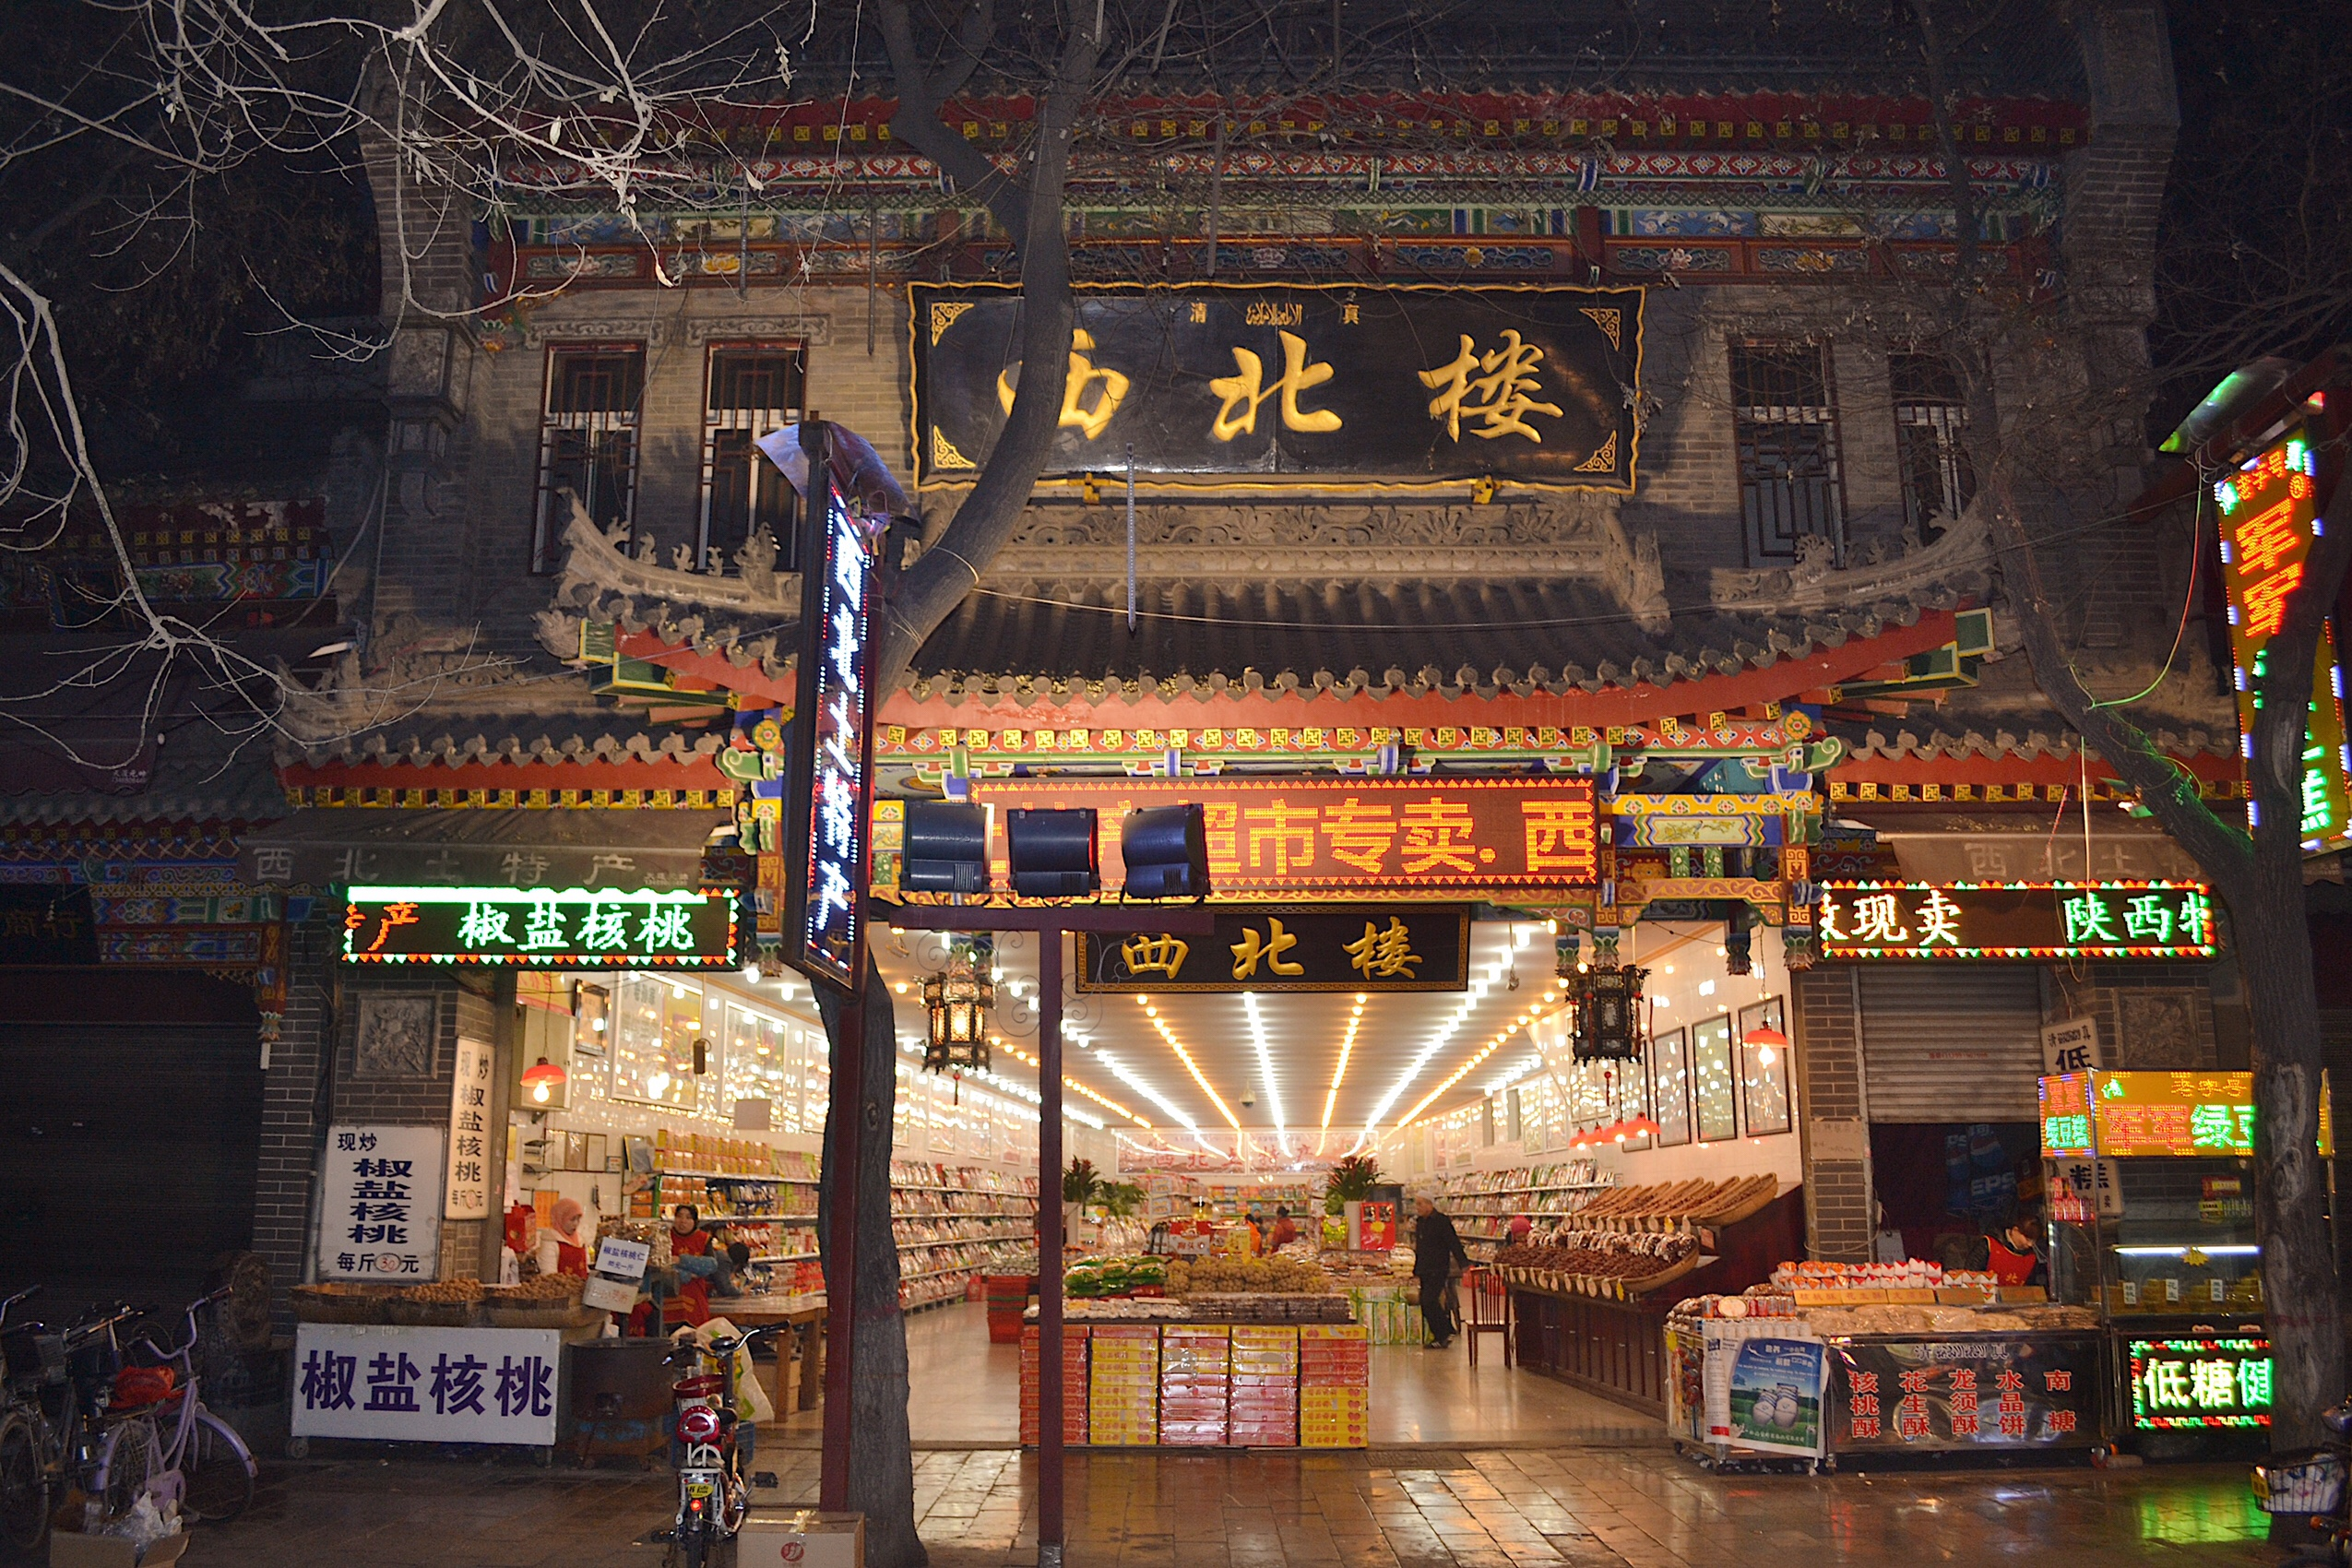 Image of shop in Xi'an in China